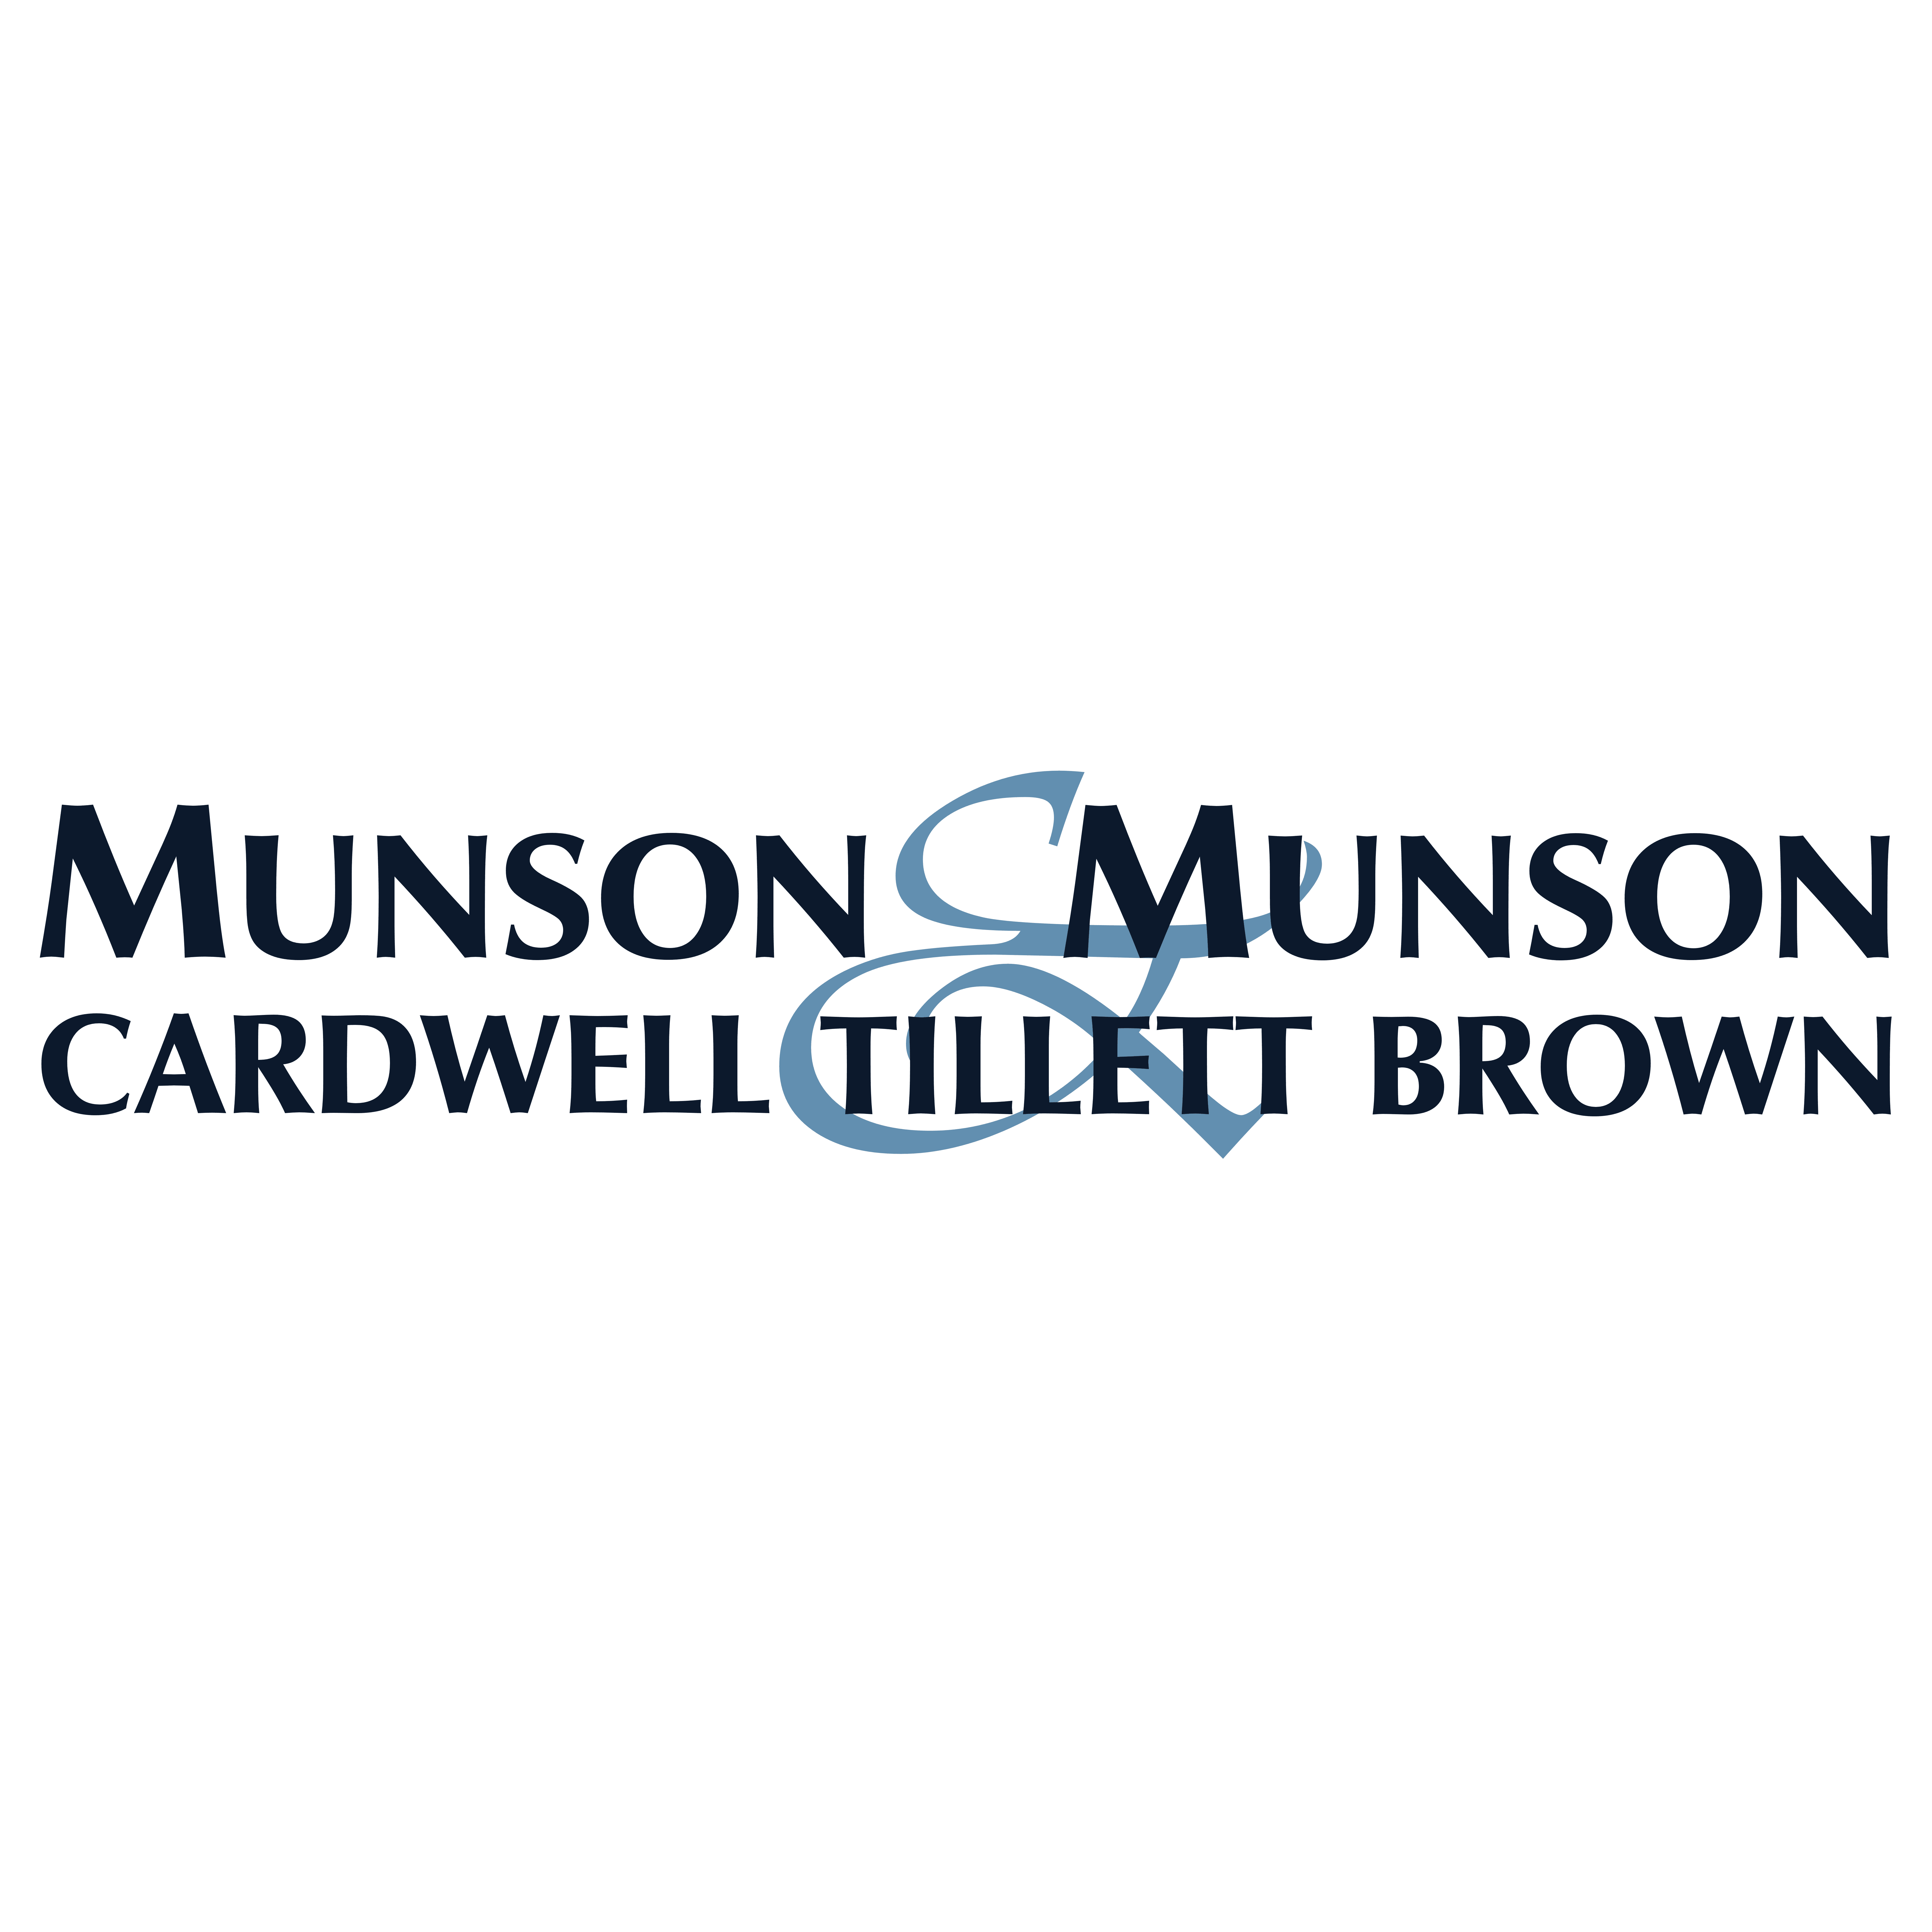 Munson, Munson, Cardwell, Tillett & Brown, PC